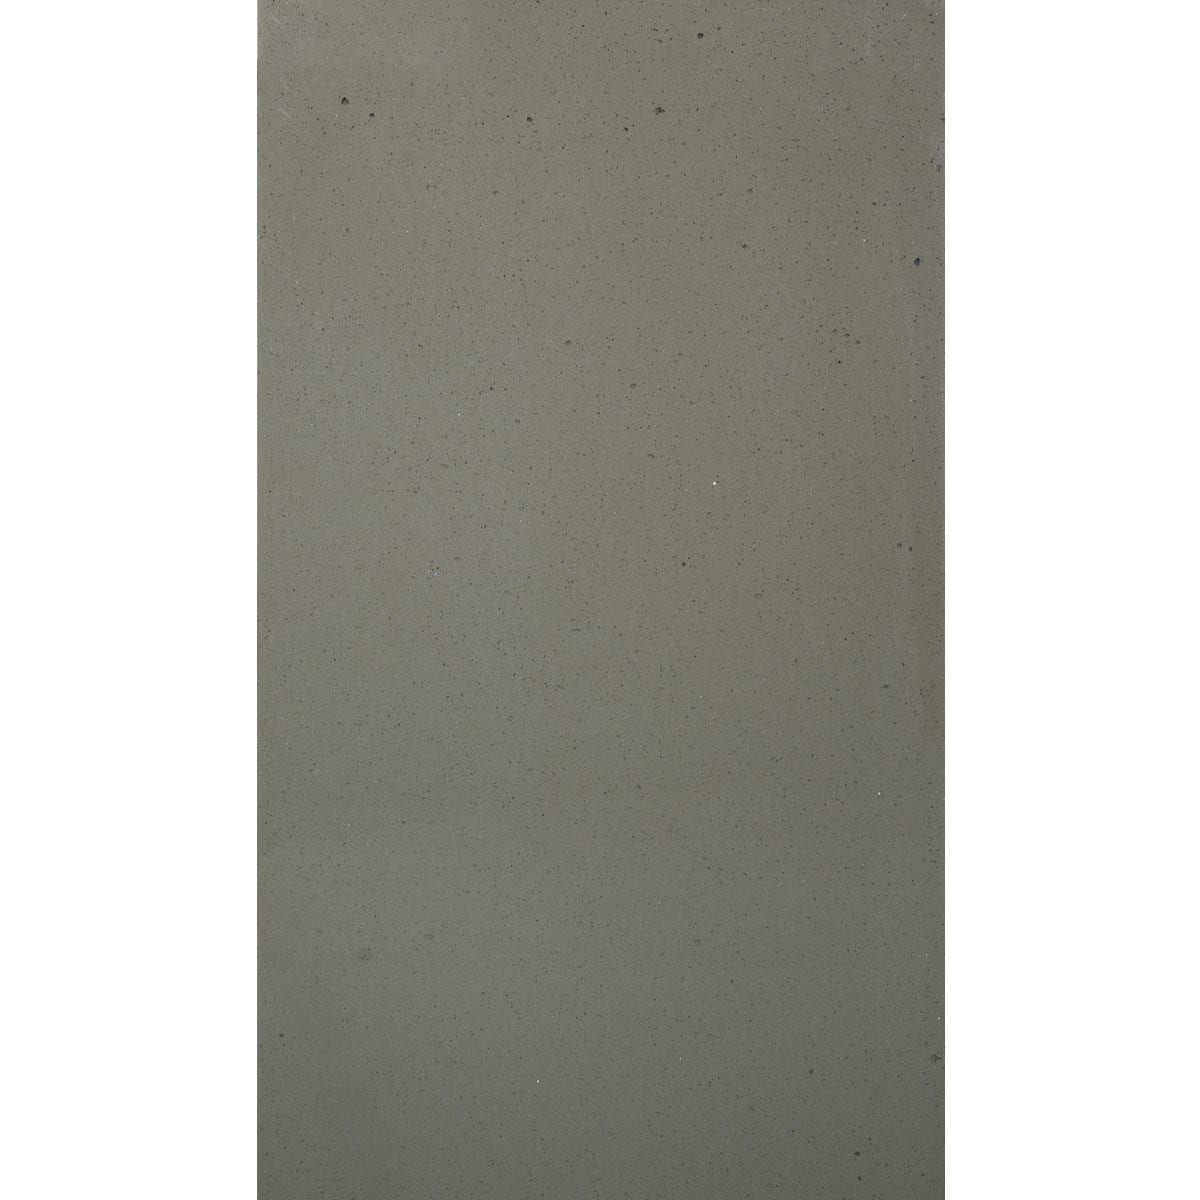 QUARTZITE STEEL T10358 P1